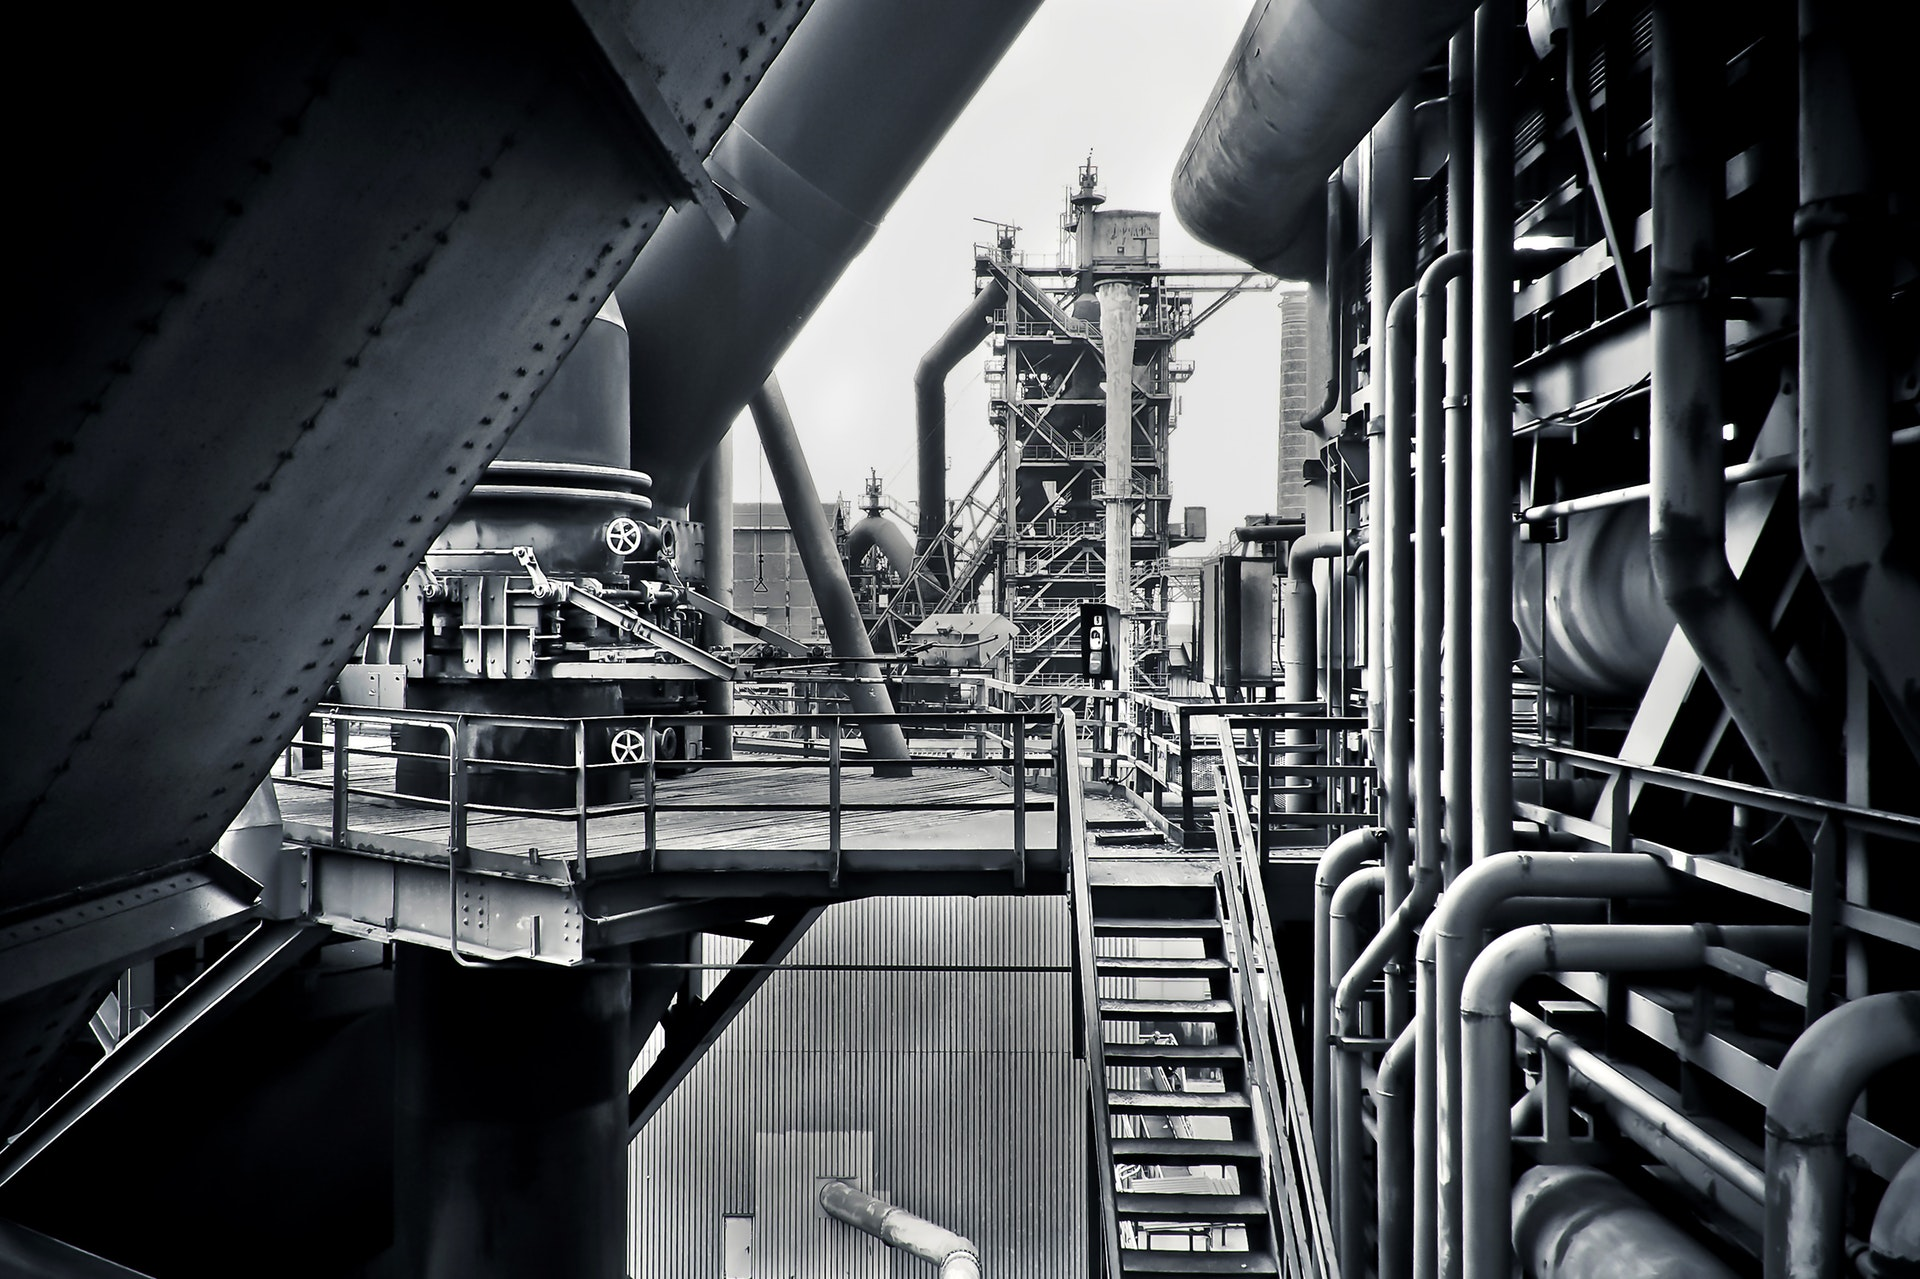 Greyscale Image Of An Industrial Plant - Industrial Engineers - The 14 Best Engineering Jobs For The Future